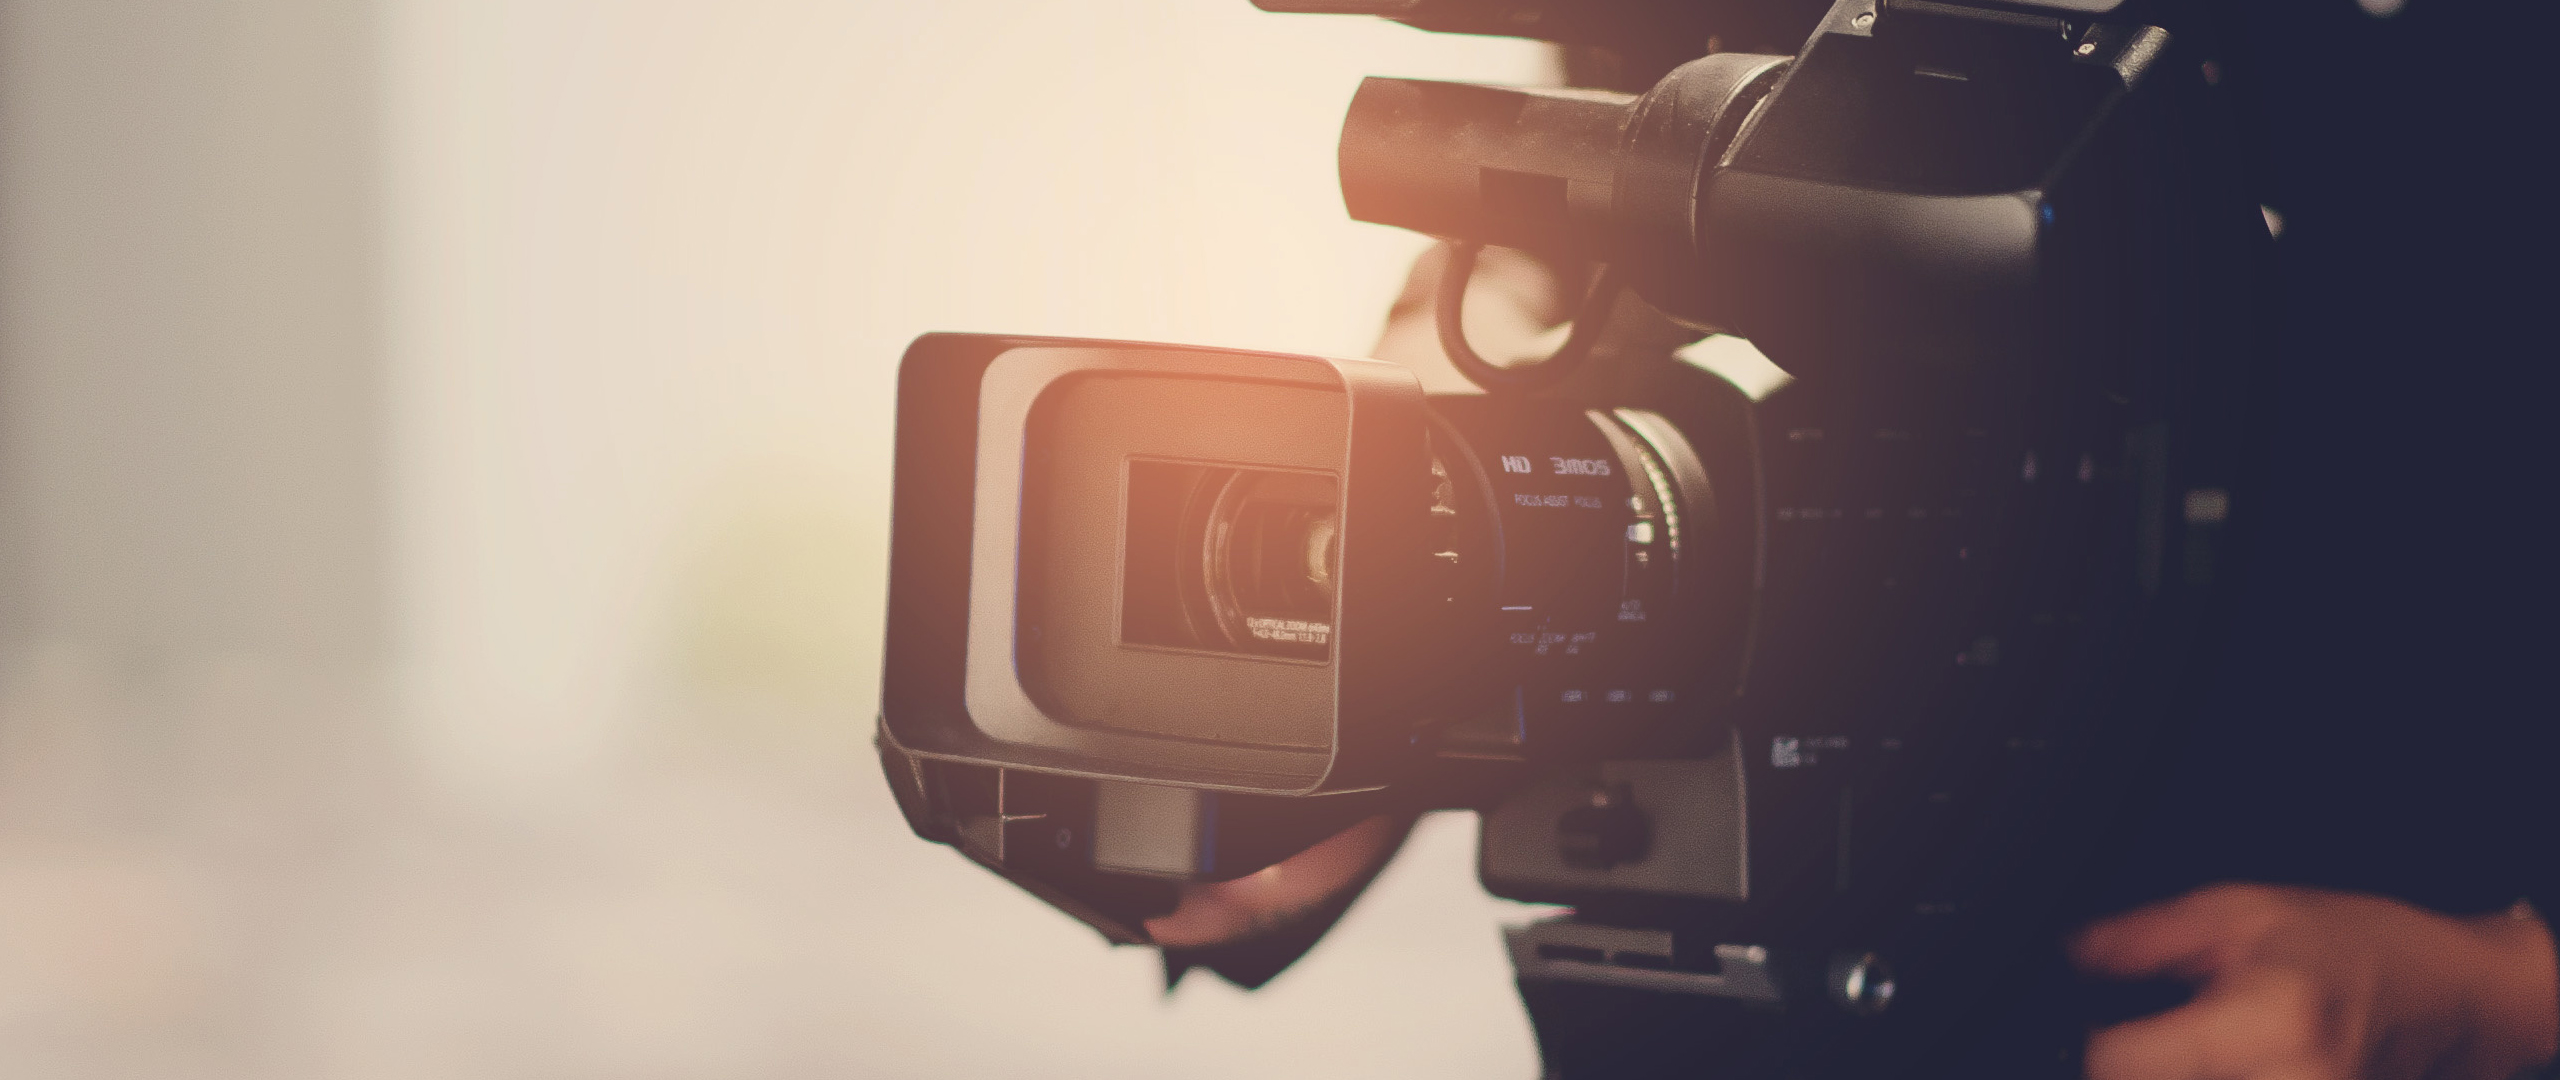 How Can Video Help You Post Lockdown?